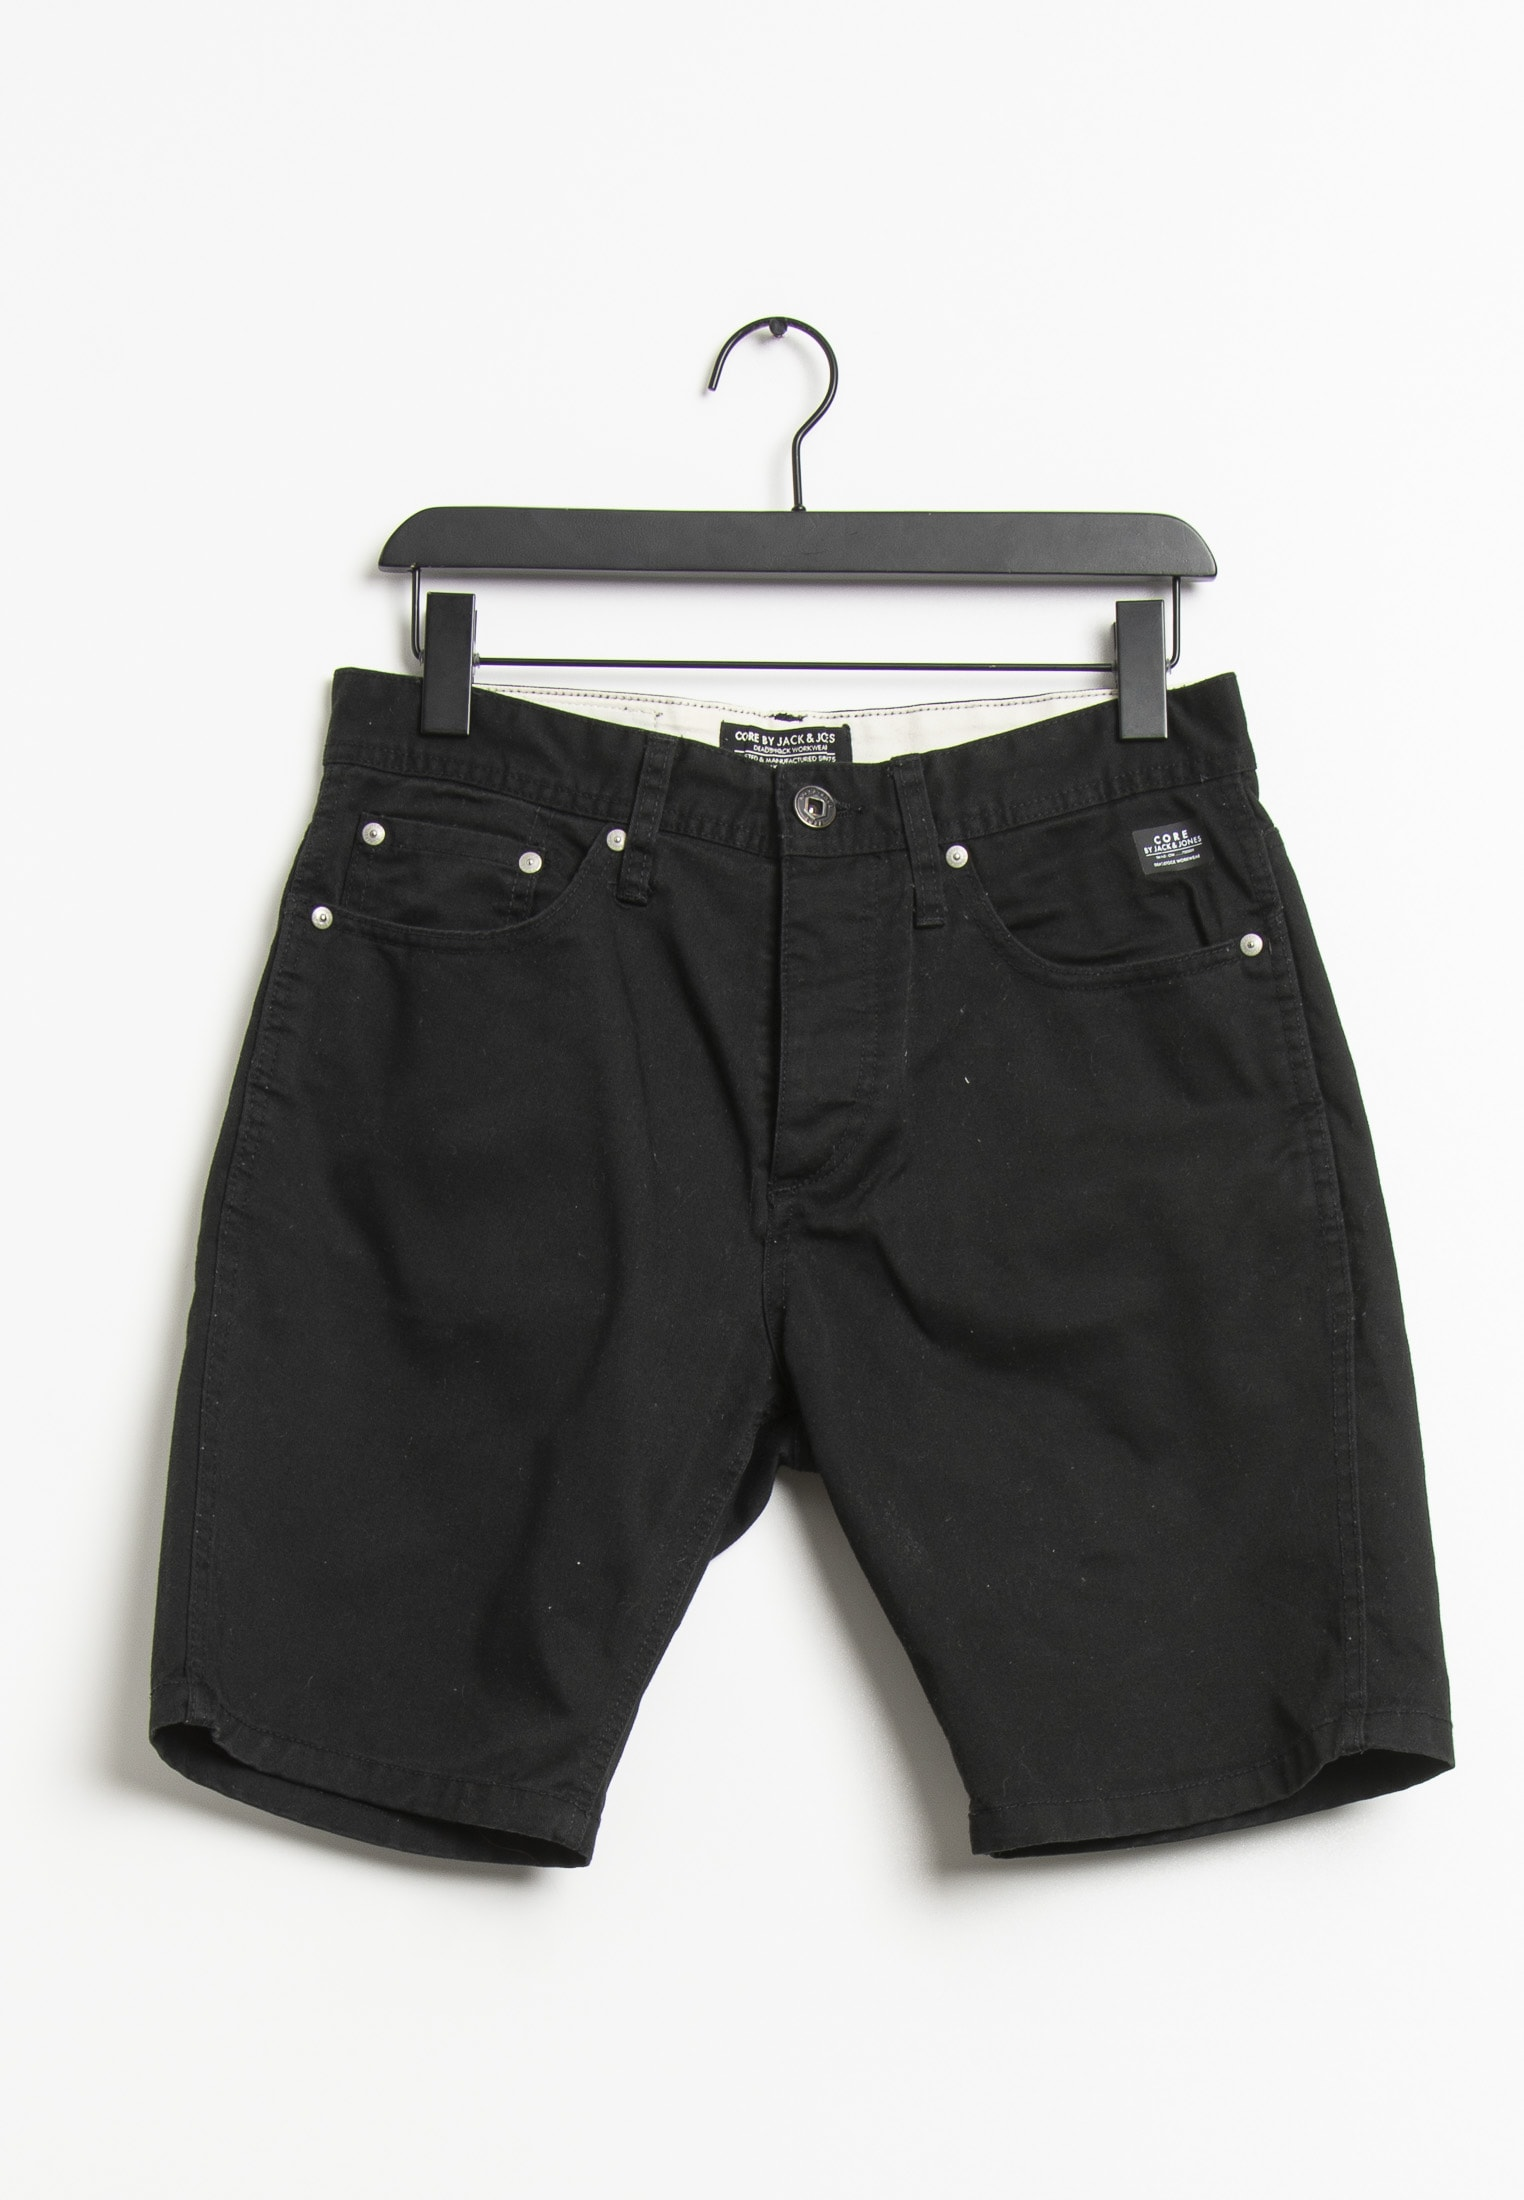 Jack & Jones Shorts Schwarz Gr.S